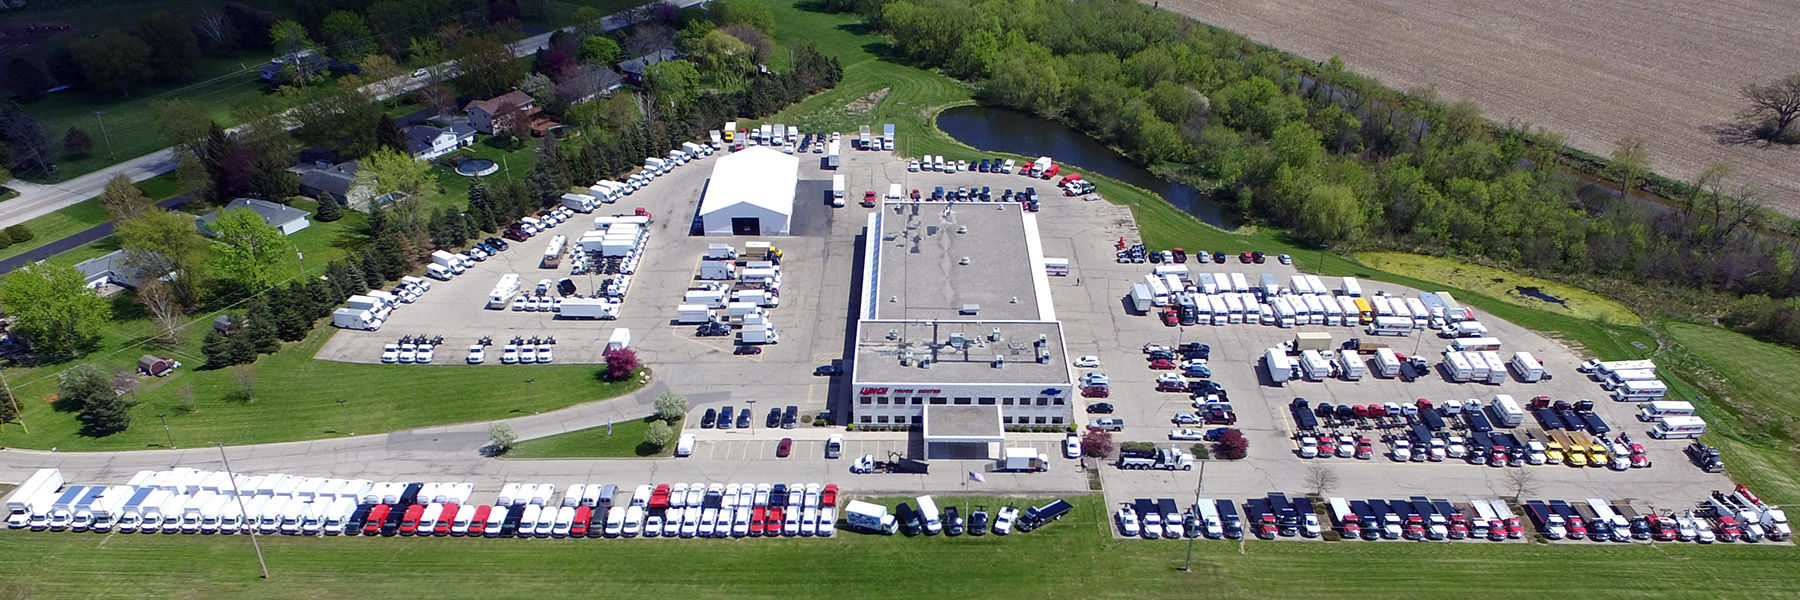 Lynch Truck Center Aerial View